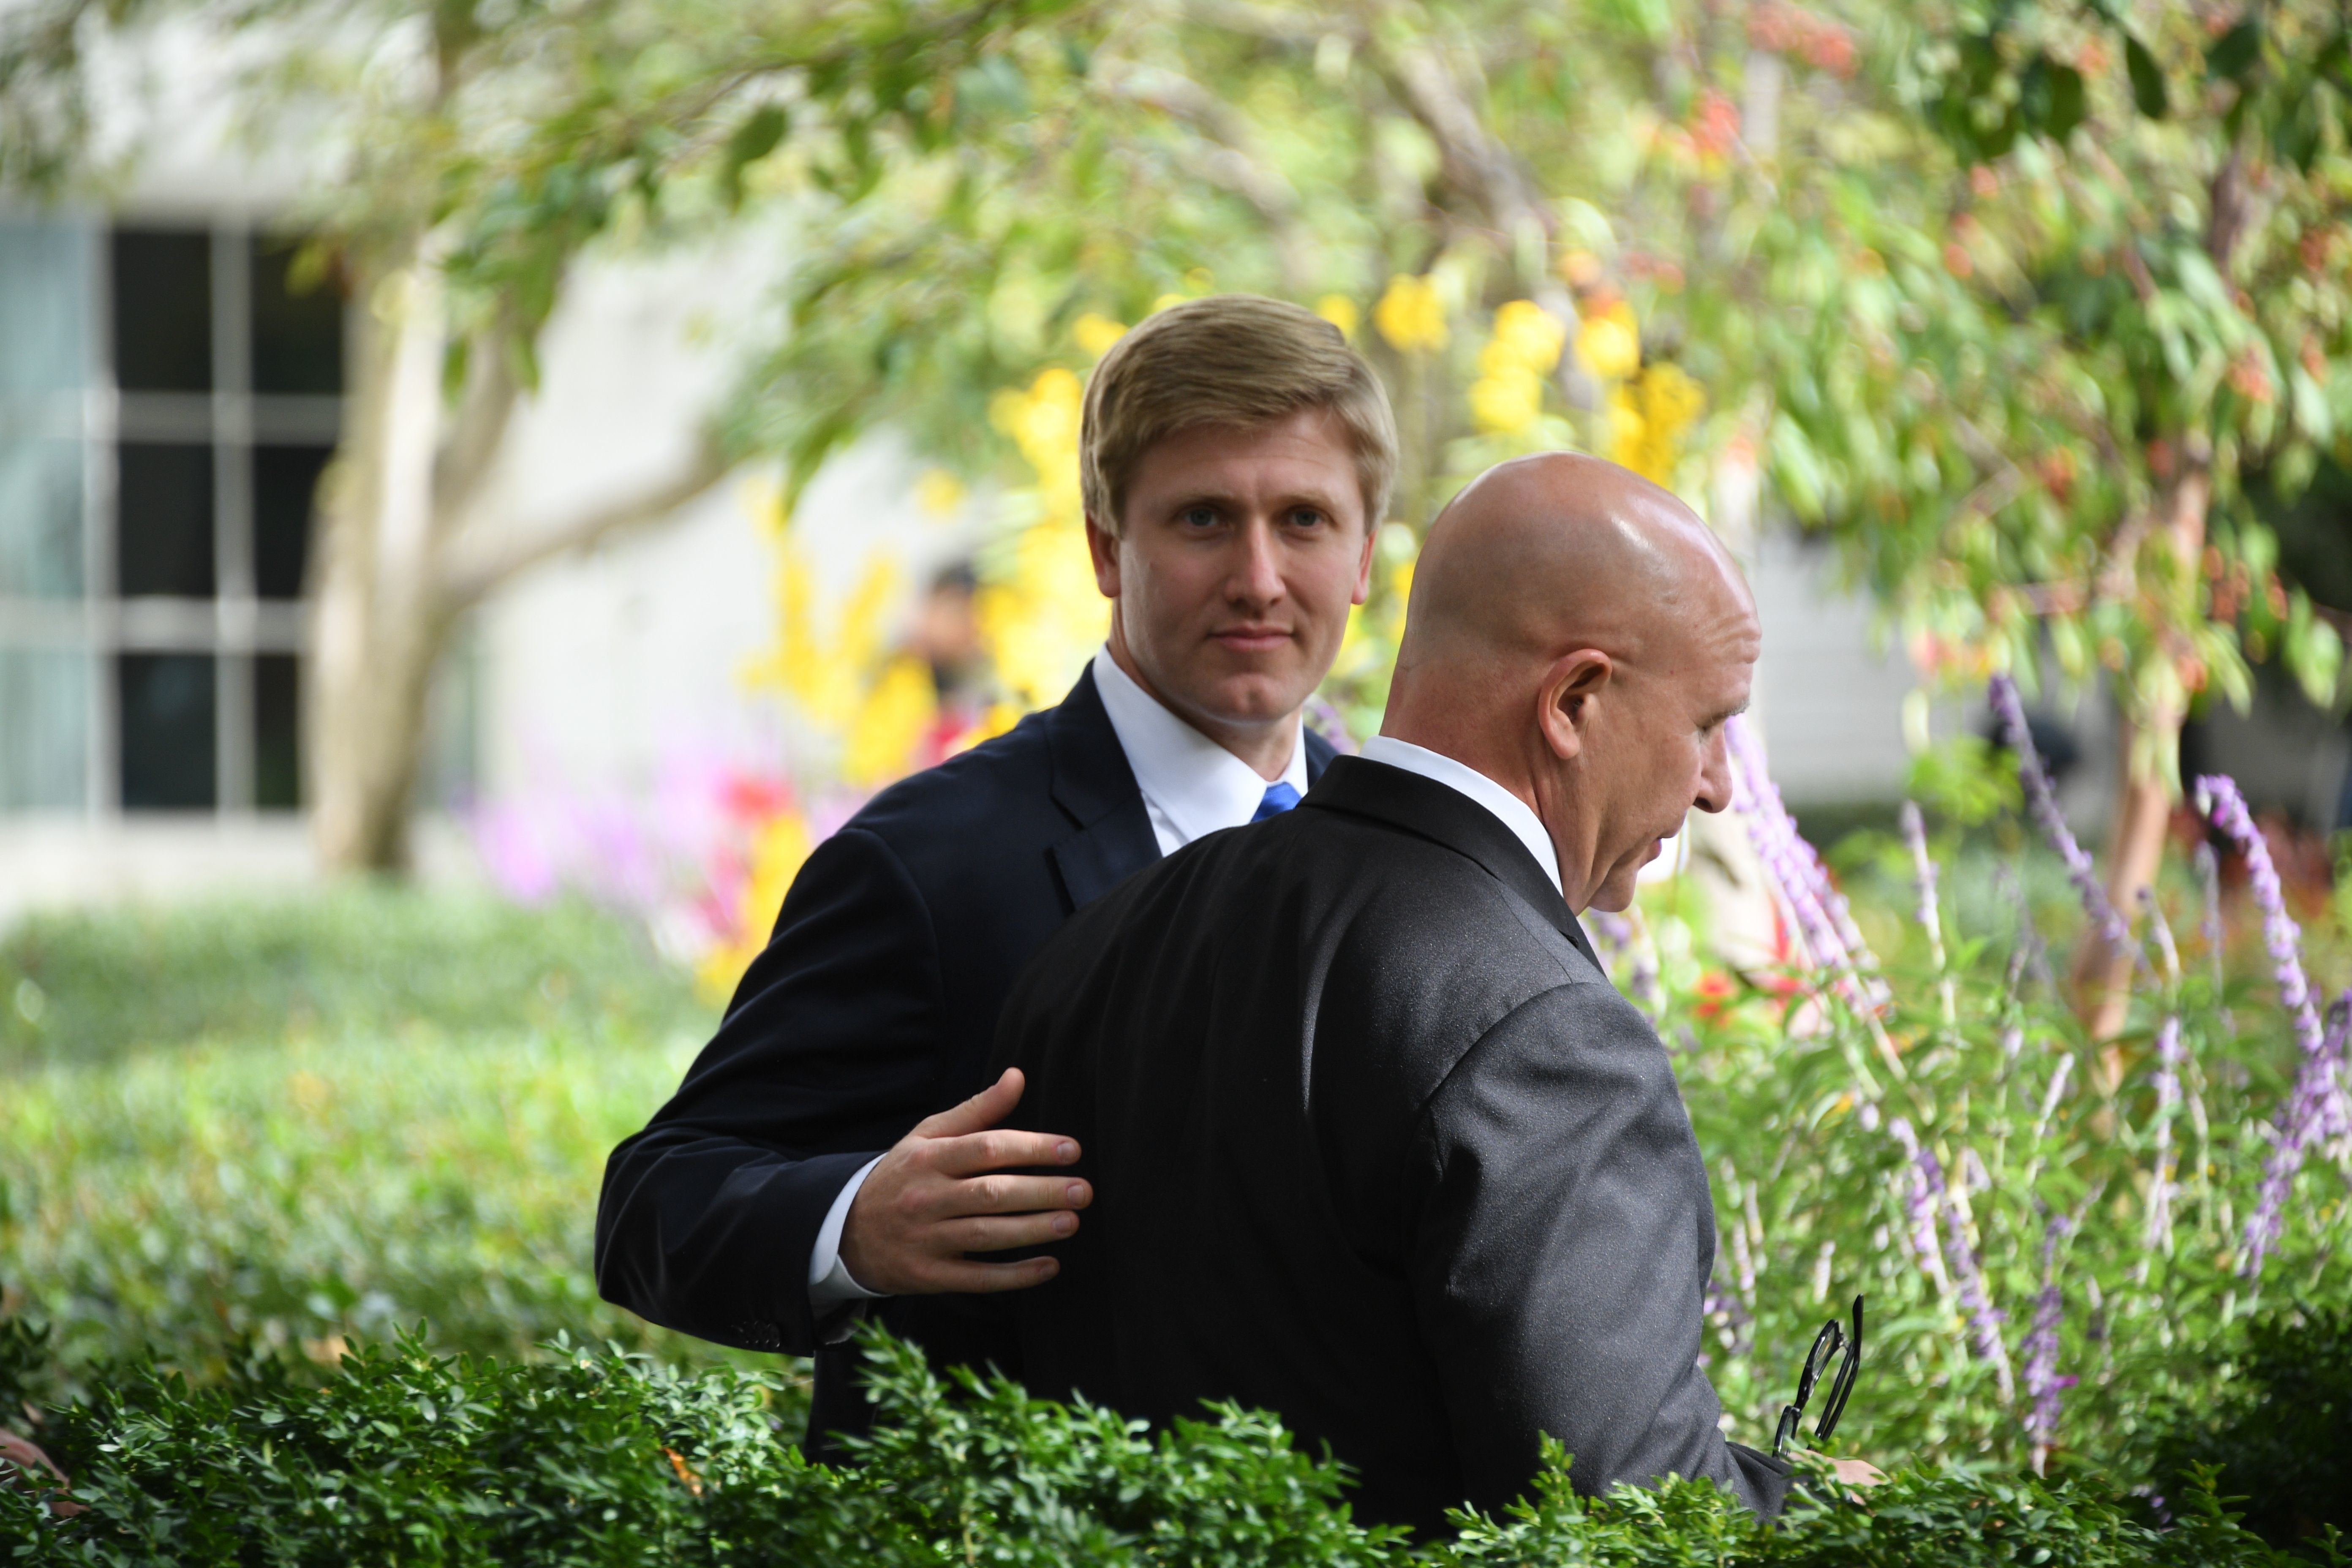 Nick Ayers Declined Trump's Offer To Replace John Kelly As Chief Of Staff: